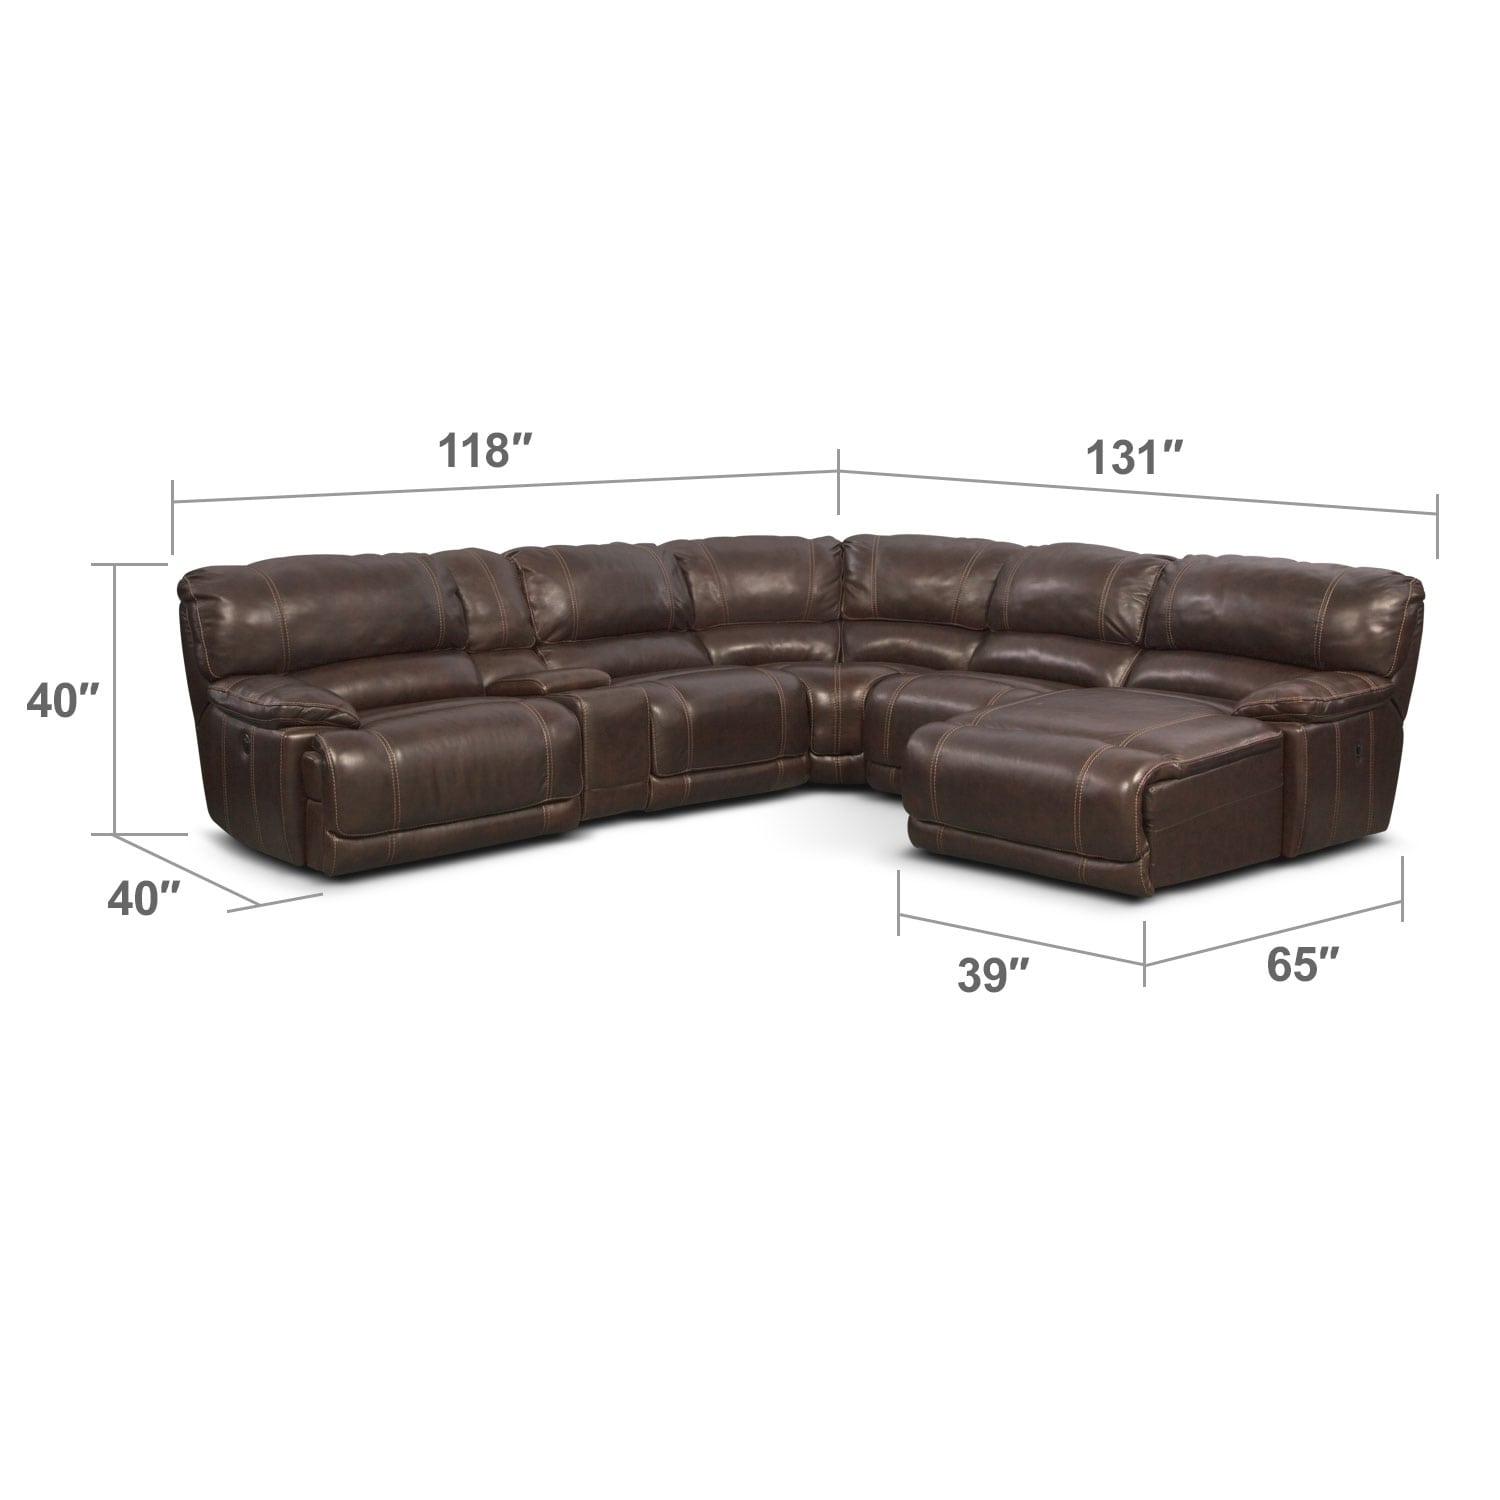 caruso leather 5 piece power motion sectional sofa best home furnishings reviews st malo 6 reclining with right